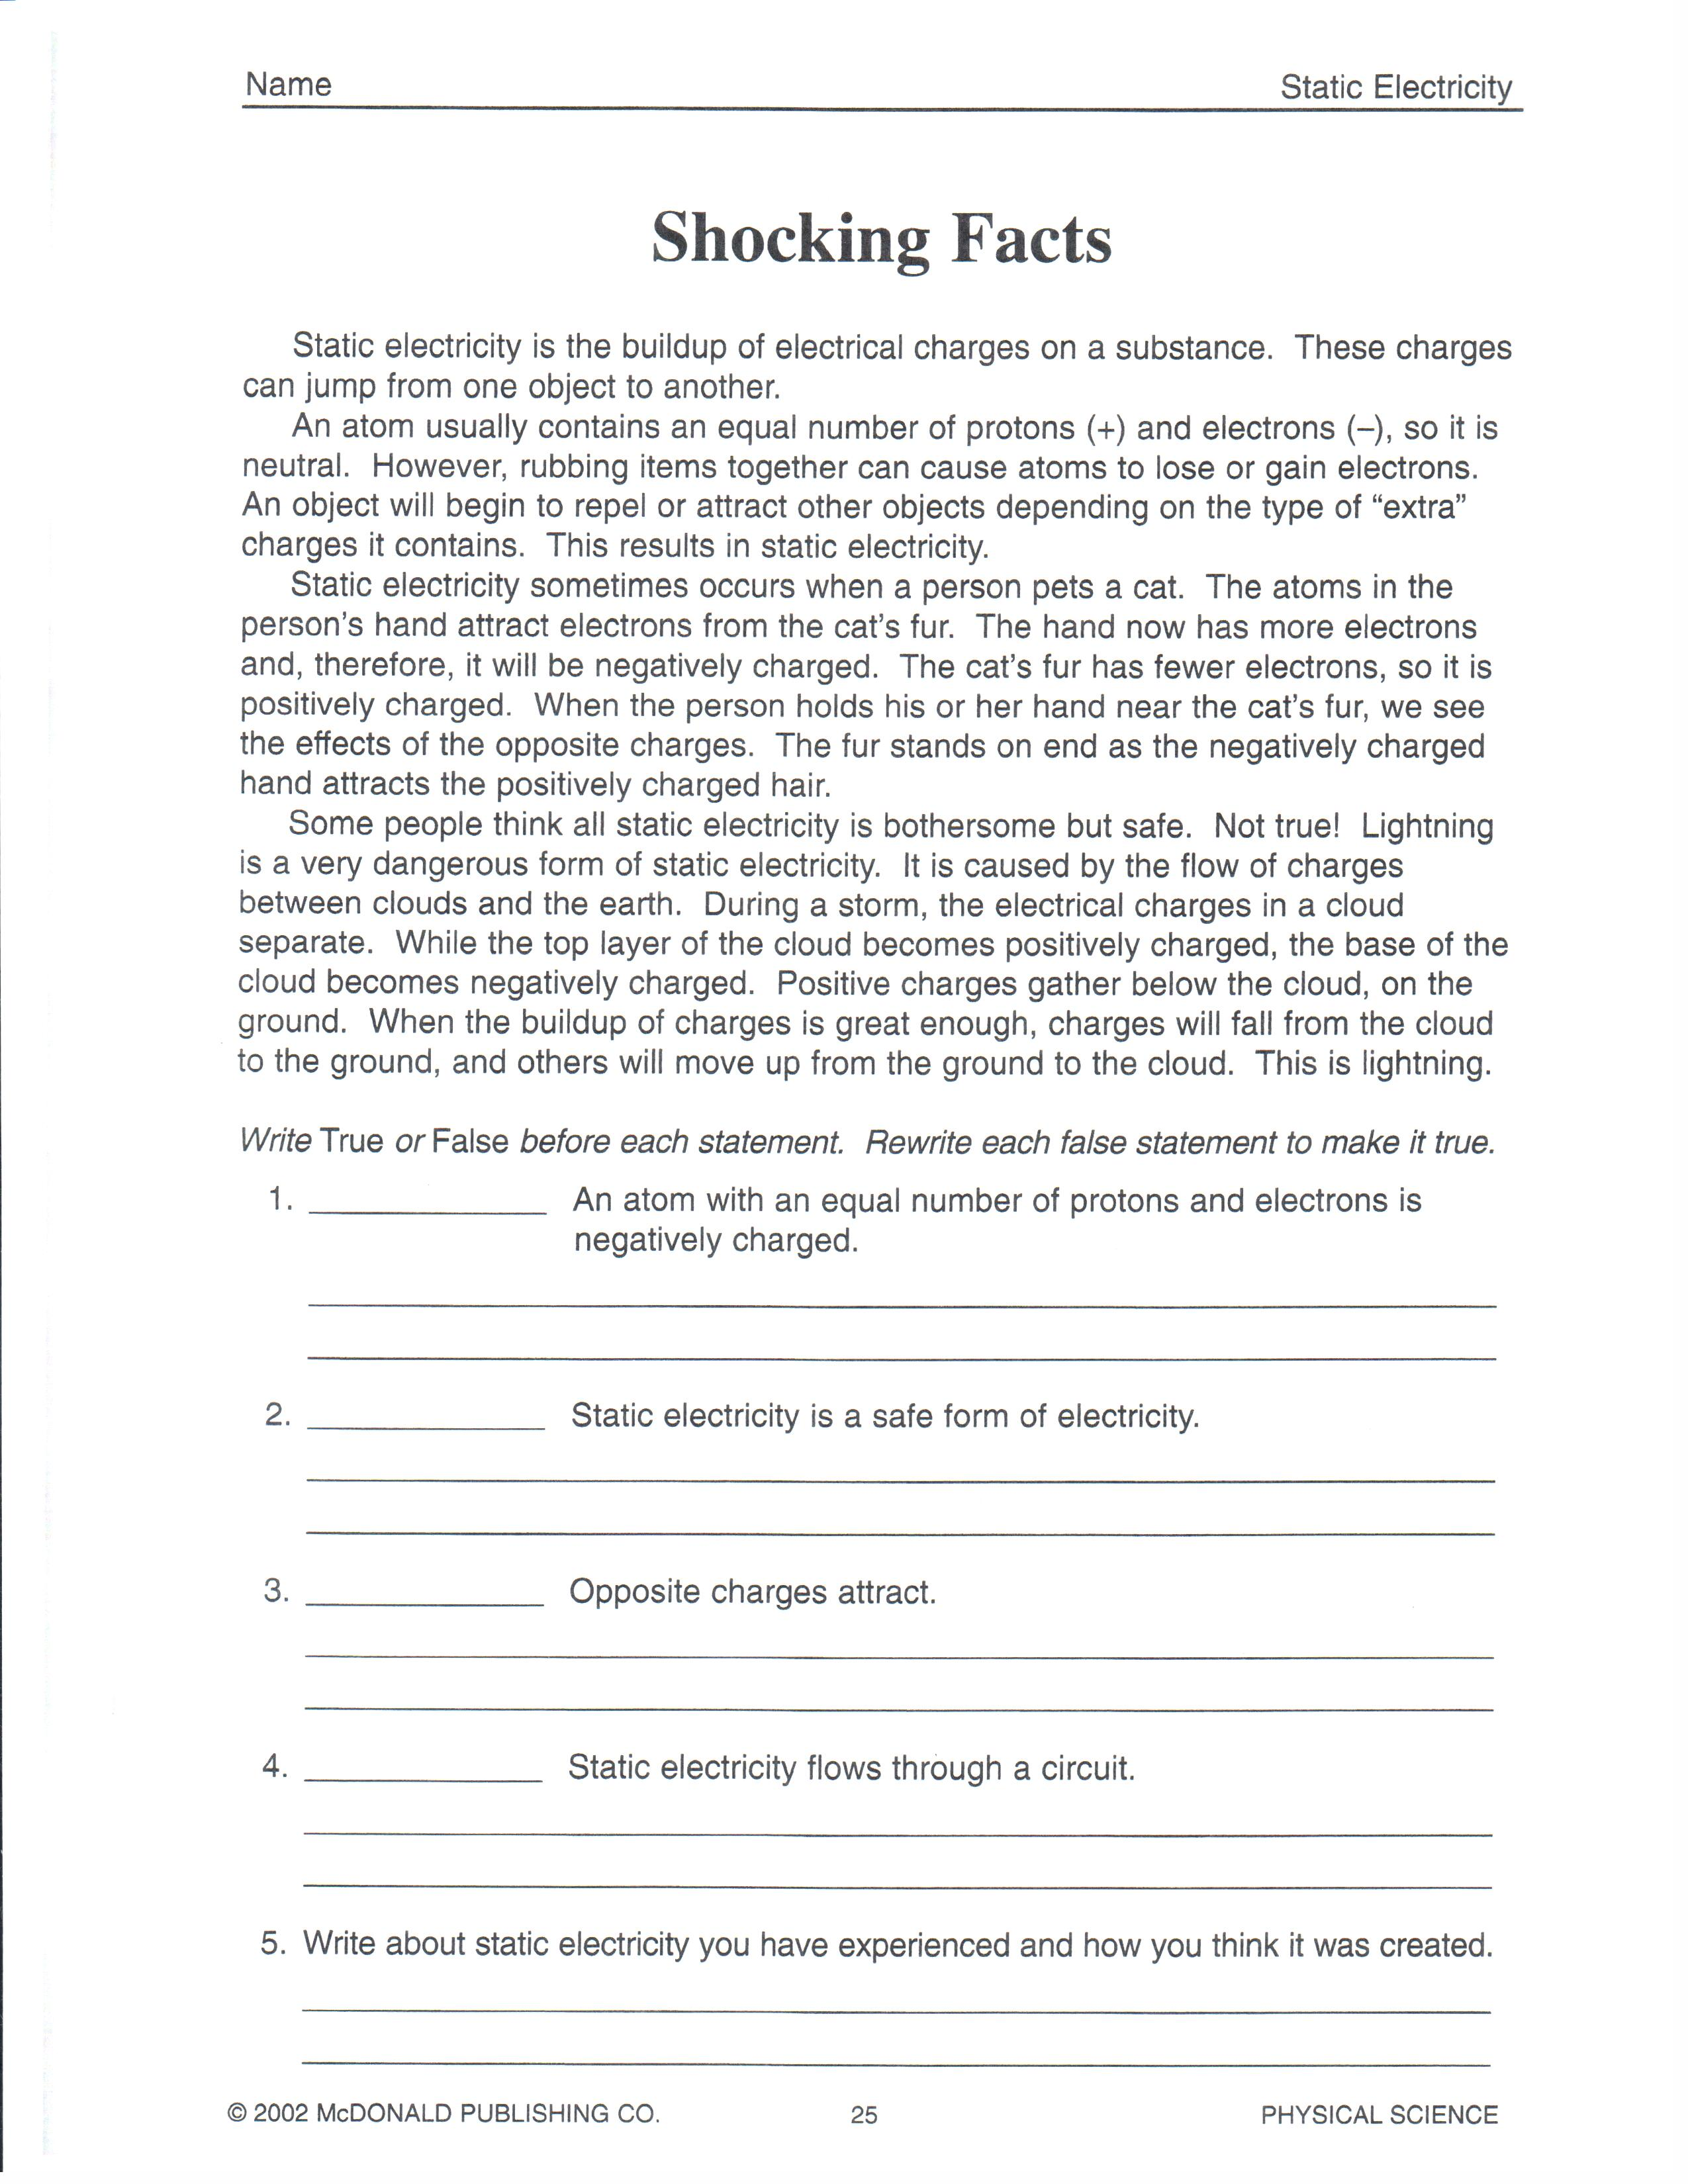 8th Grade Physical Science Worksheet Answers